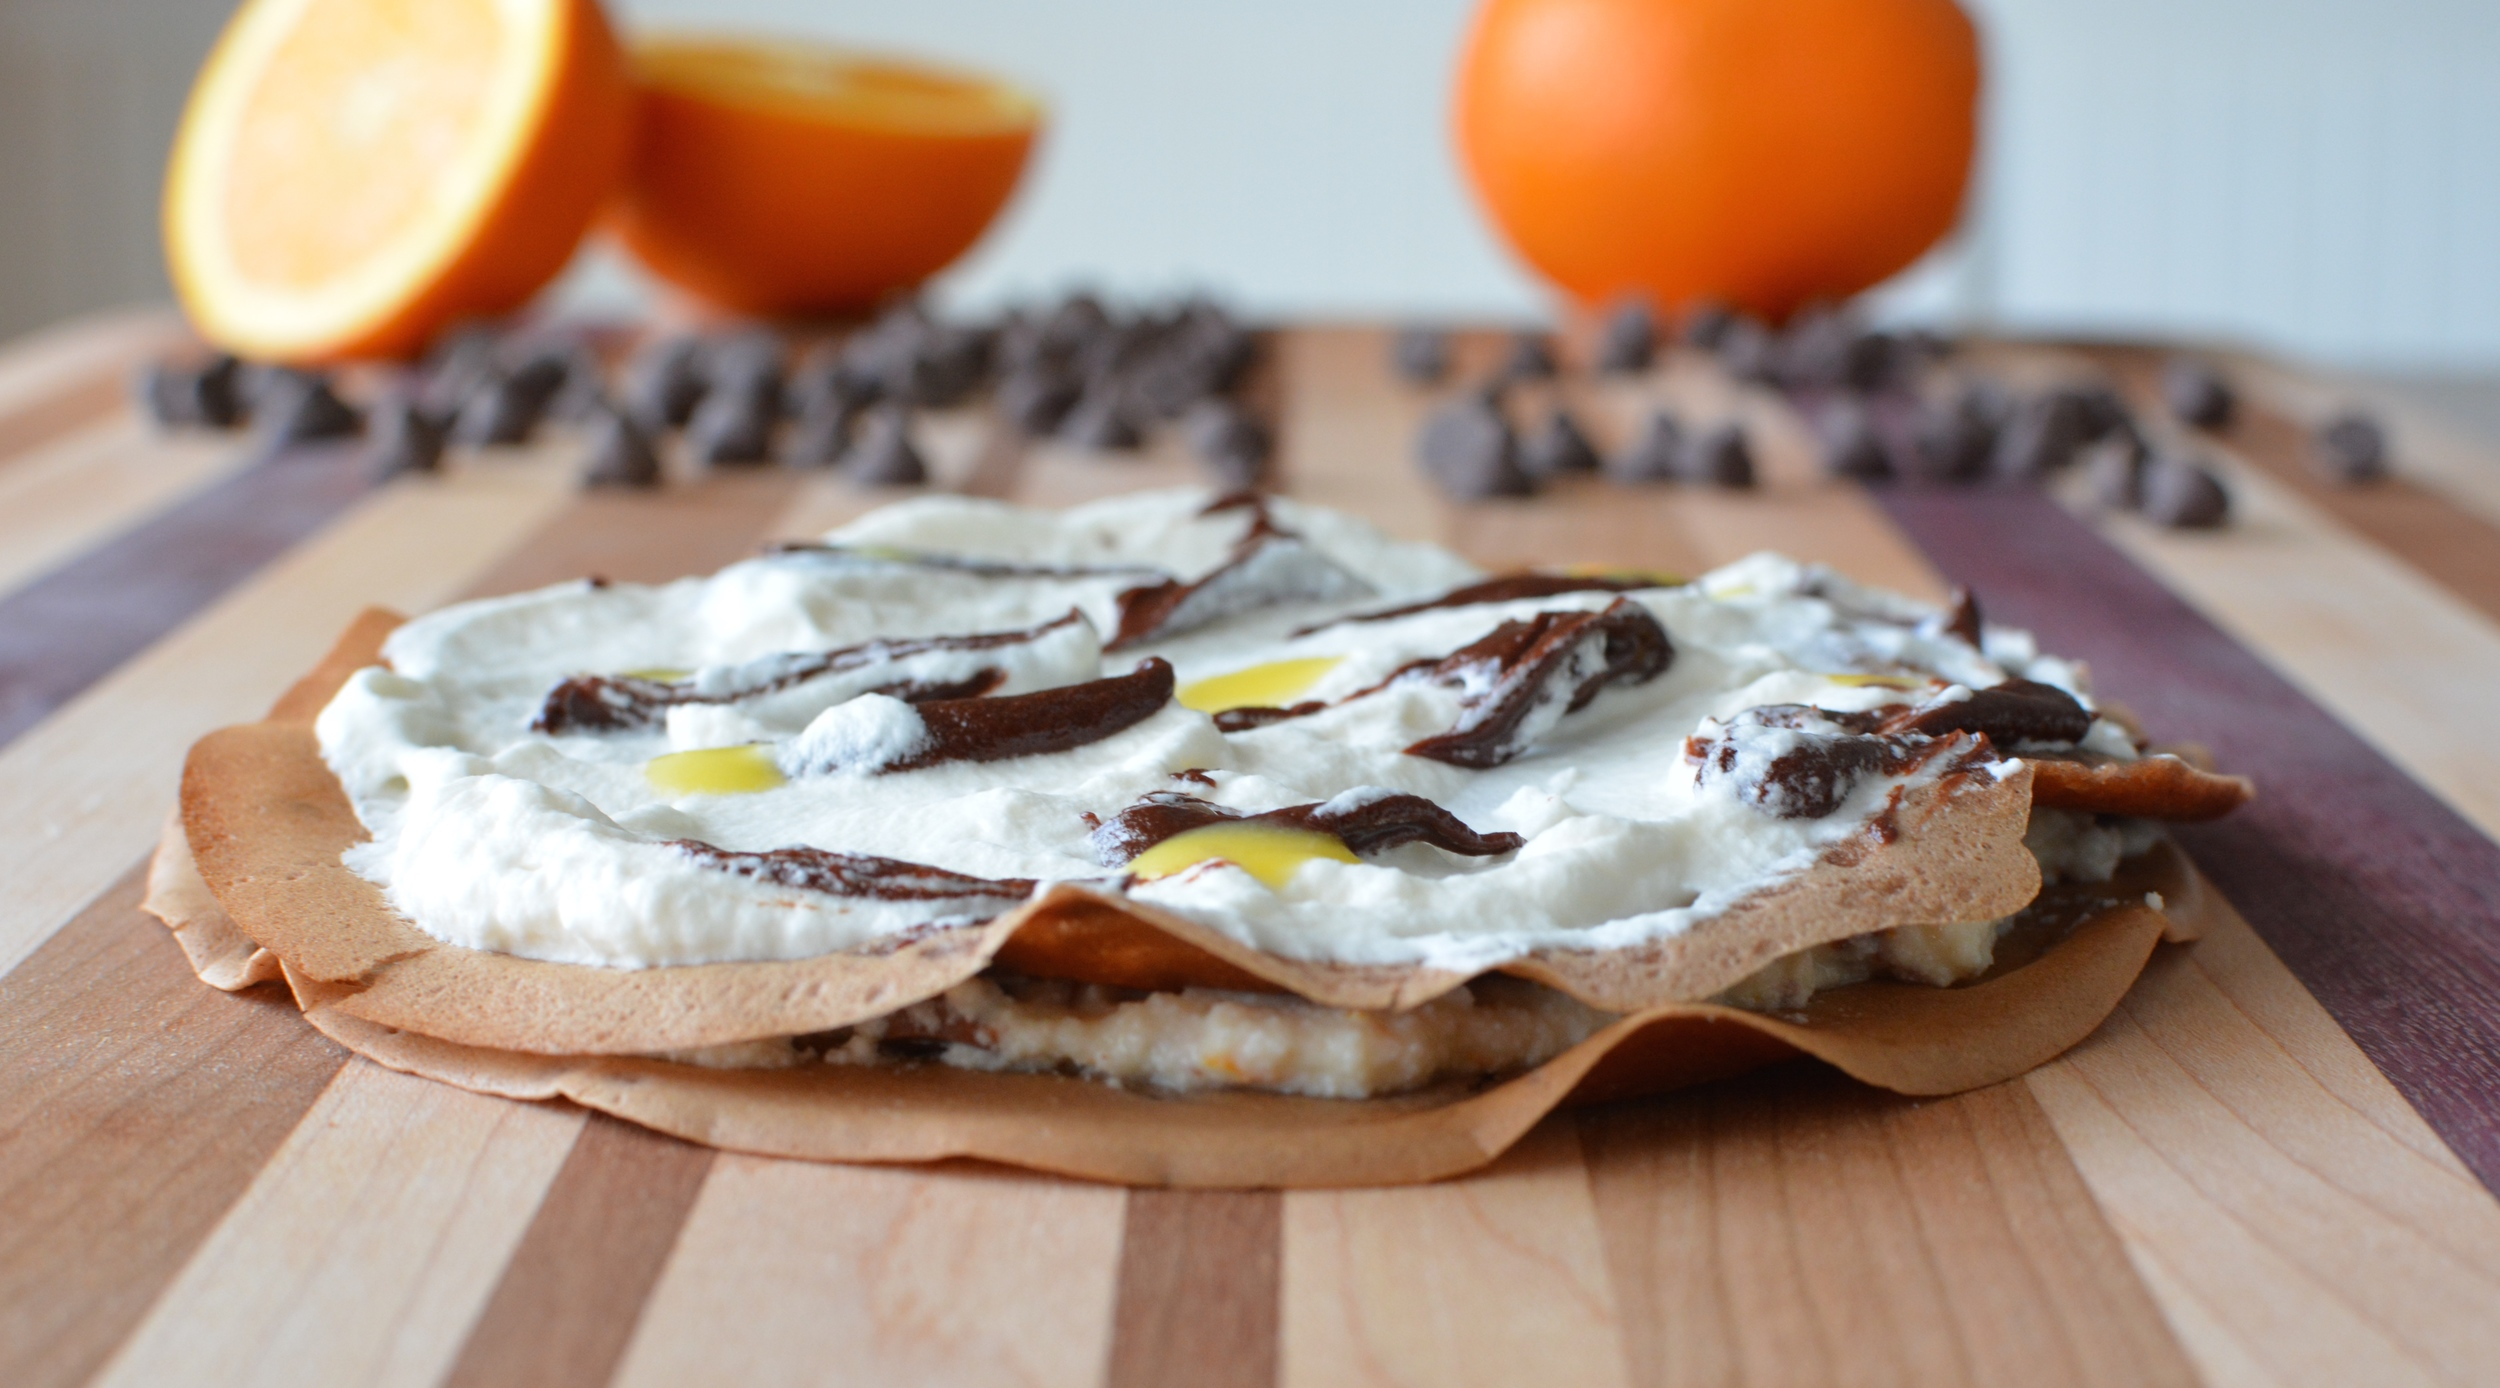 Two base layers of crepe and filling with a small amount of ganache and orange cream sauce